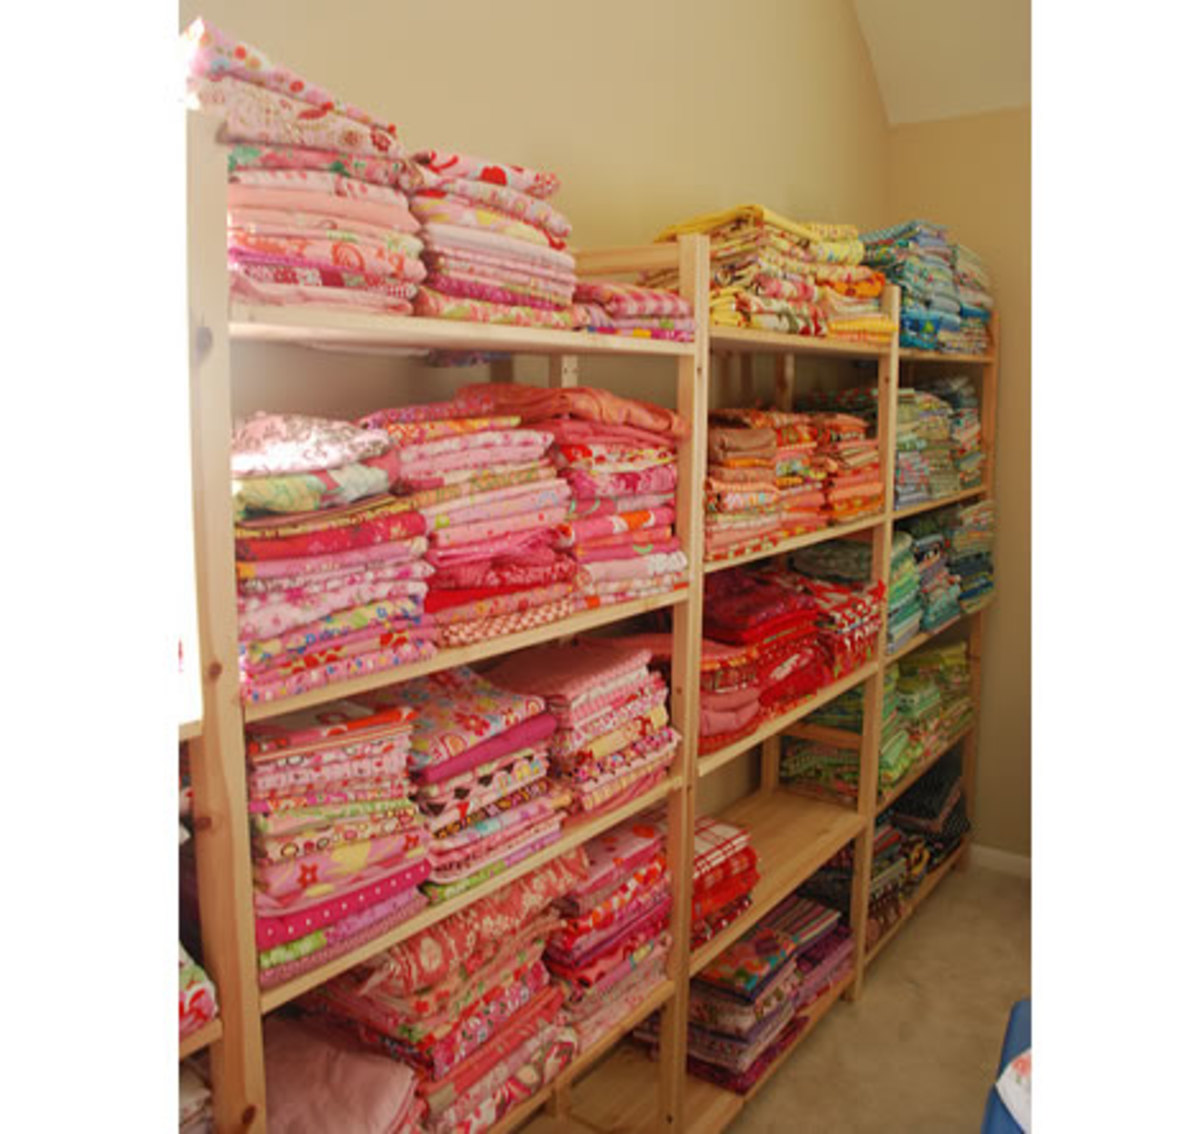 Wide Shelving Units Are Perfect For Storing Fabric.